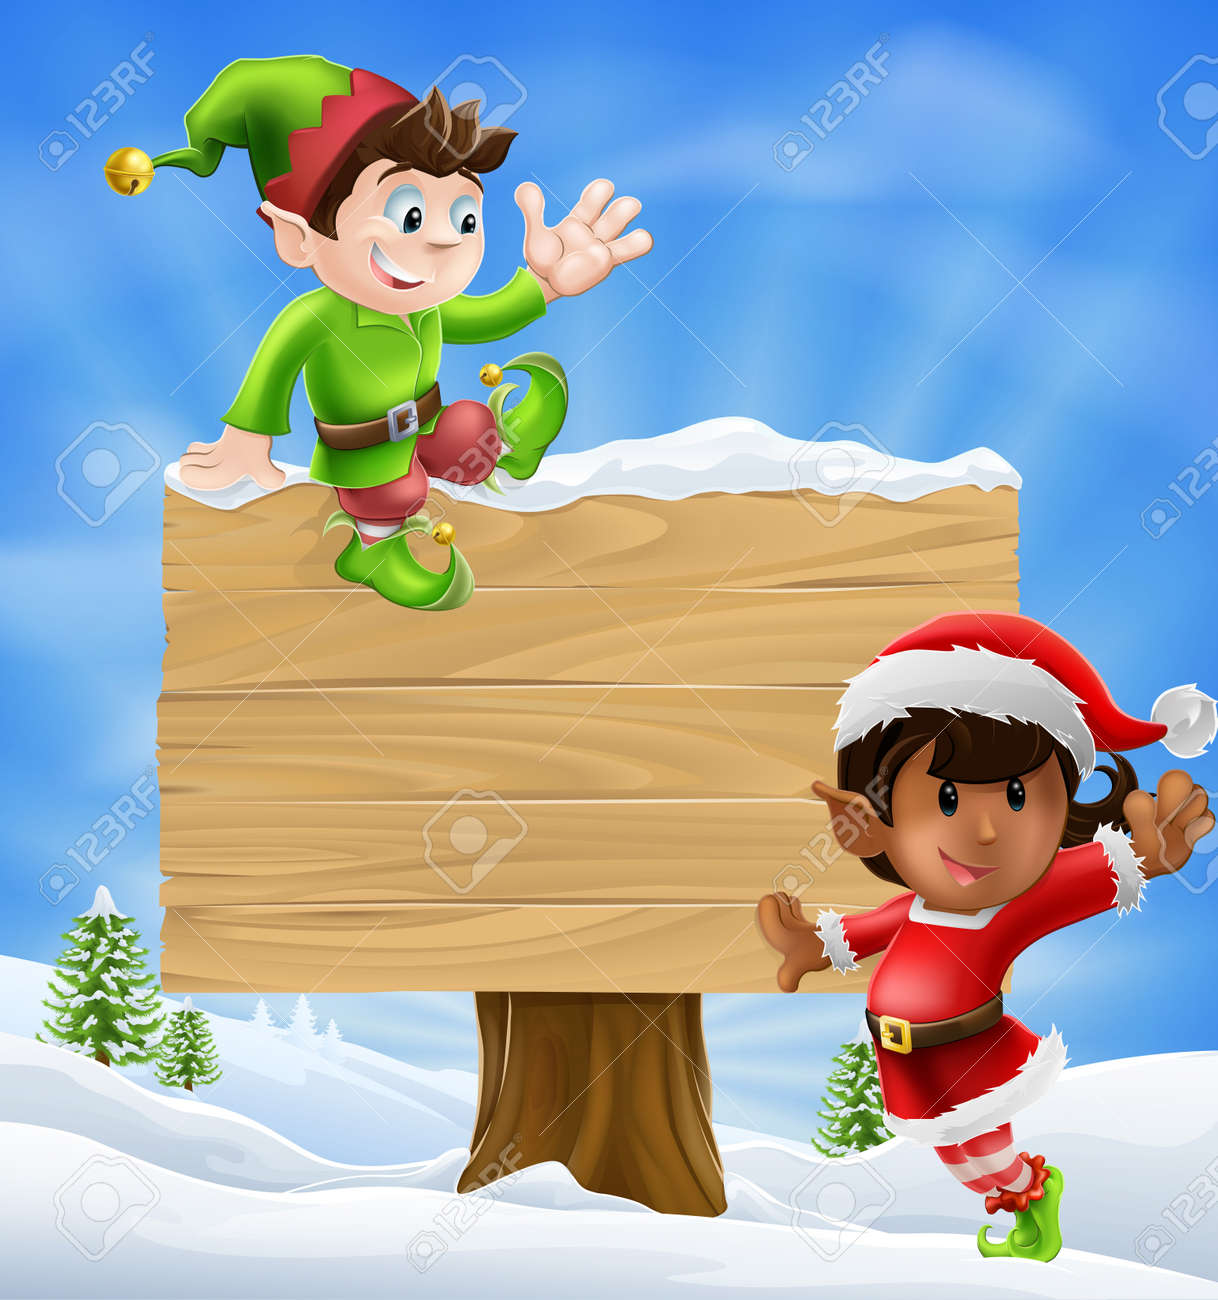 Seasonal Cartoon Of Two Christmas Elves And A Sign In The Snow ...